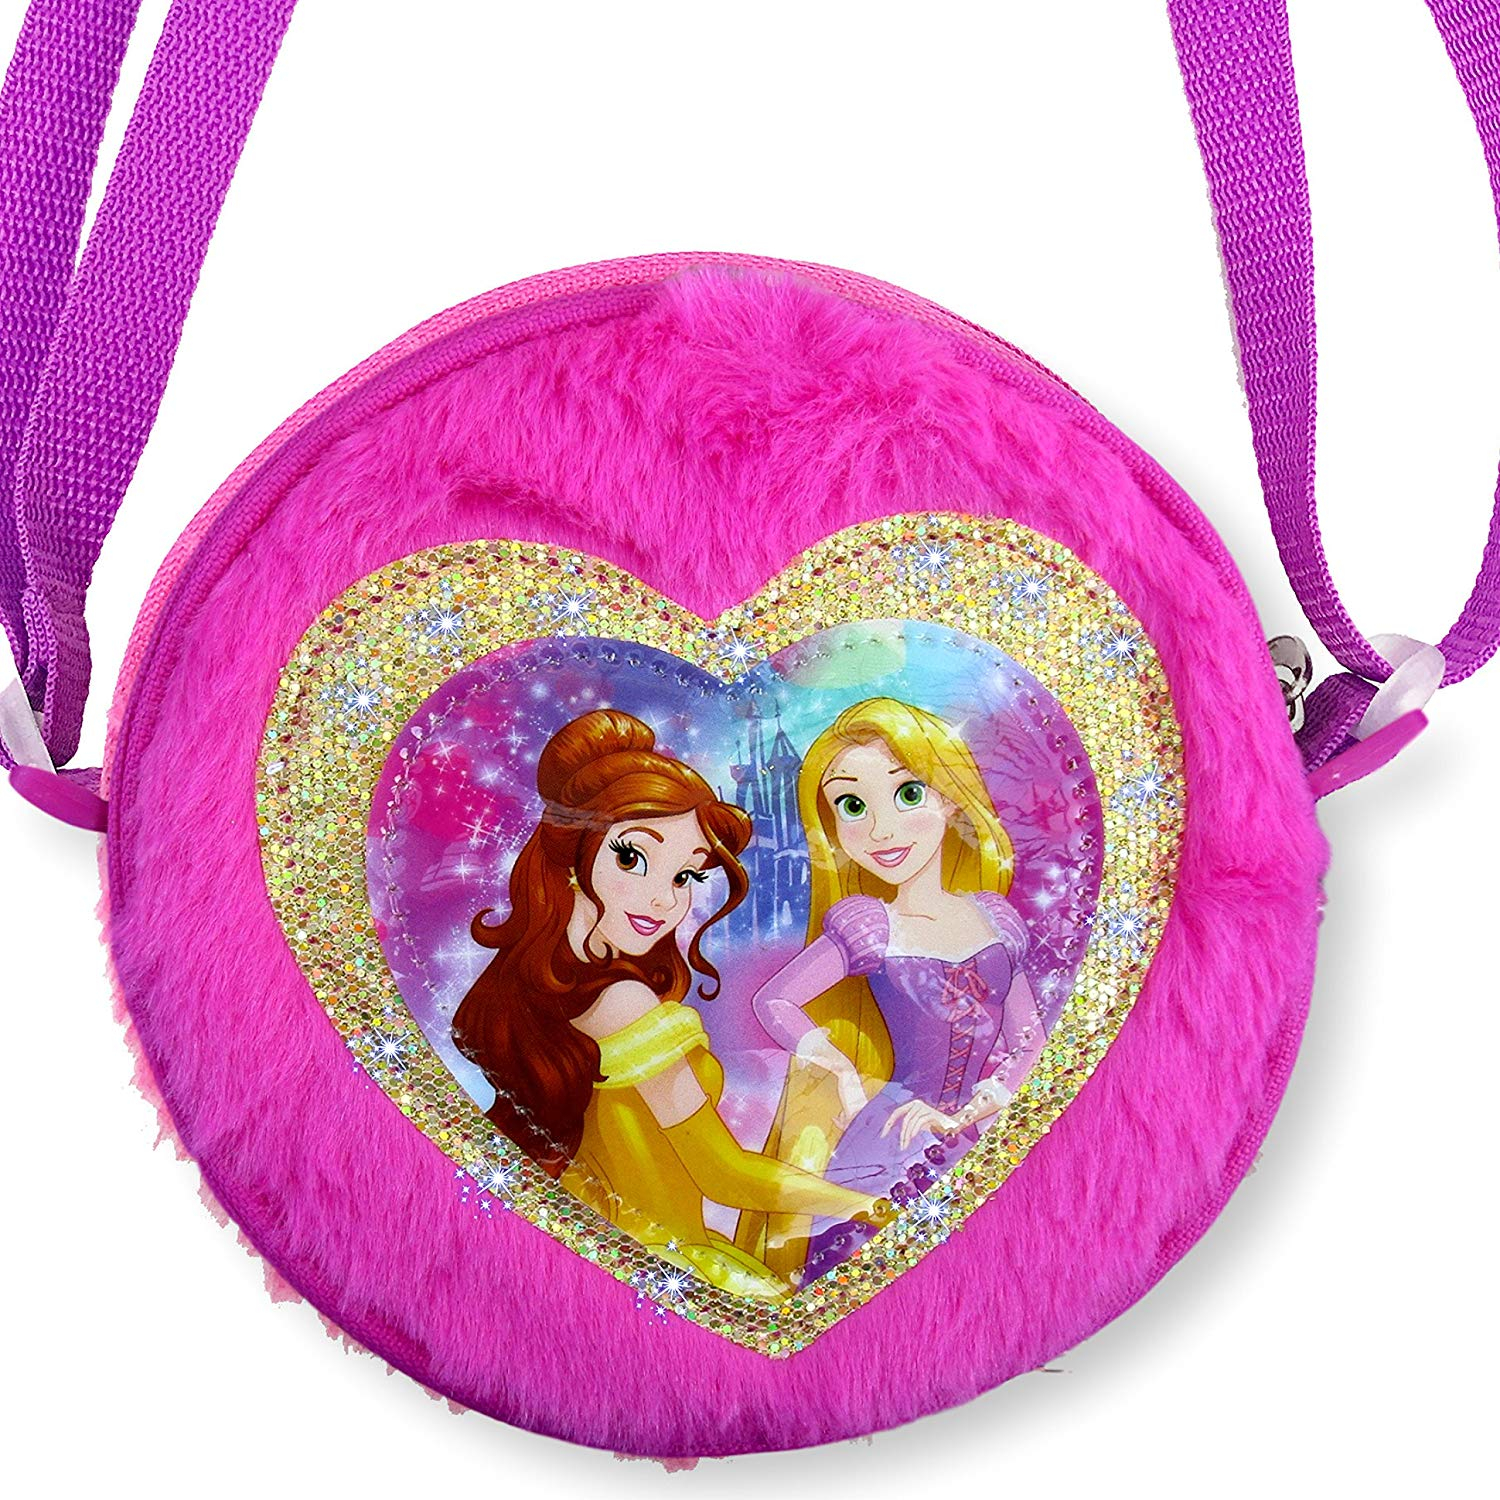 Disney Princess Belle and Rapunzel Plush Round Cross Body Bag Purse Dress Up